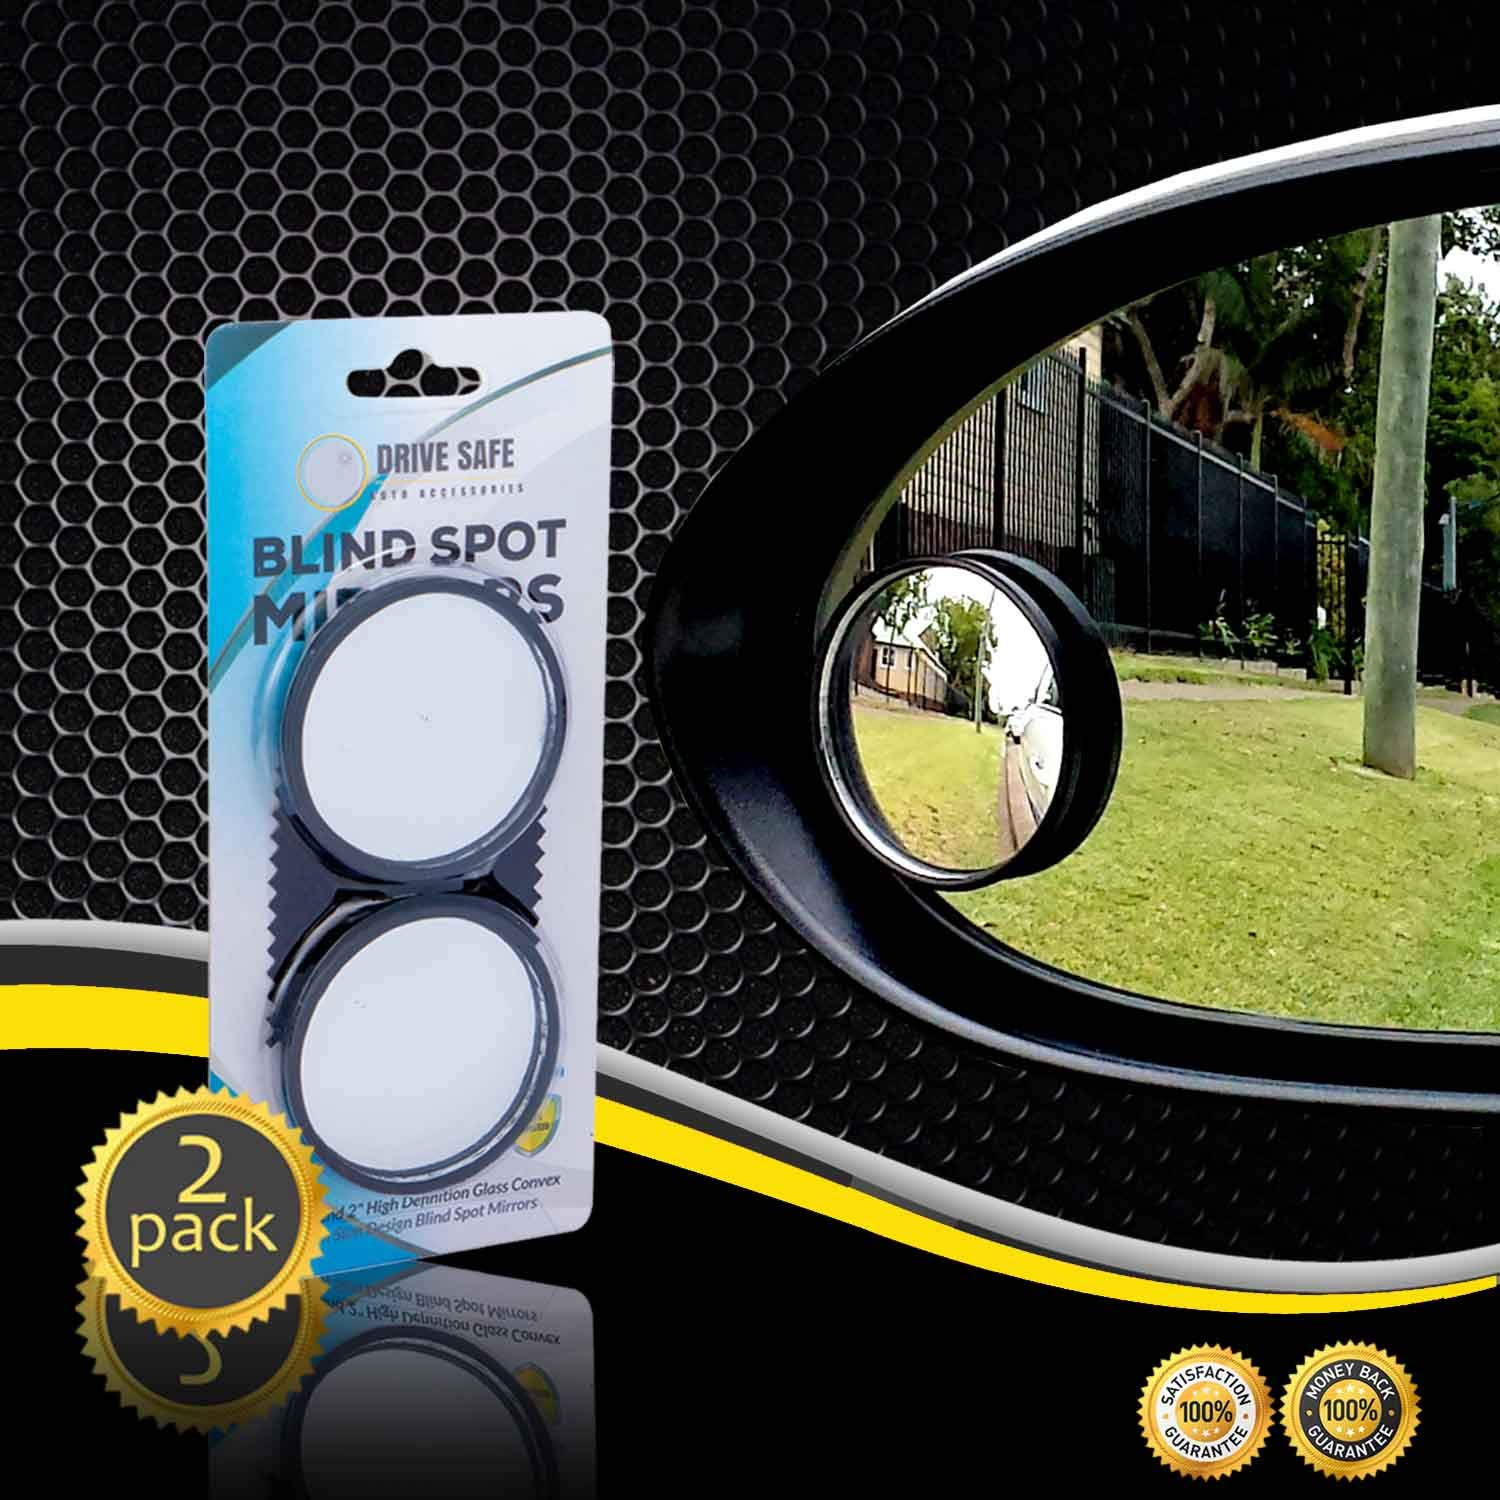 Eliminate and Improve Your Blind Spots Ultimate Rear View Mirror for All Cars Ideal for Parallel Parking Drive Safe Blind Spot Mirrors HD 2 Fixed Round Glass Blind Spot Mirror 2-Pack